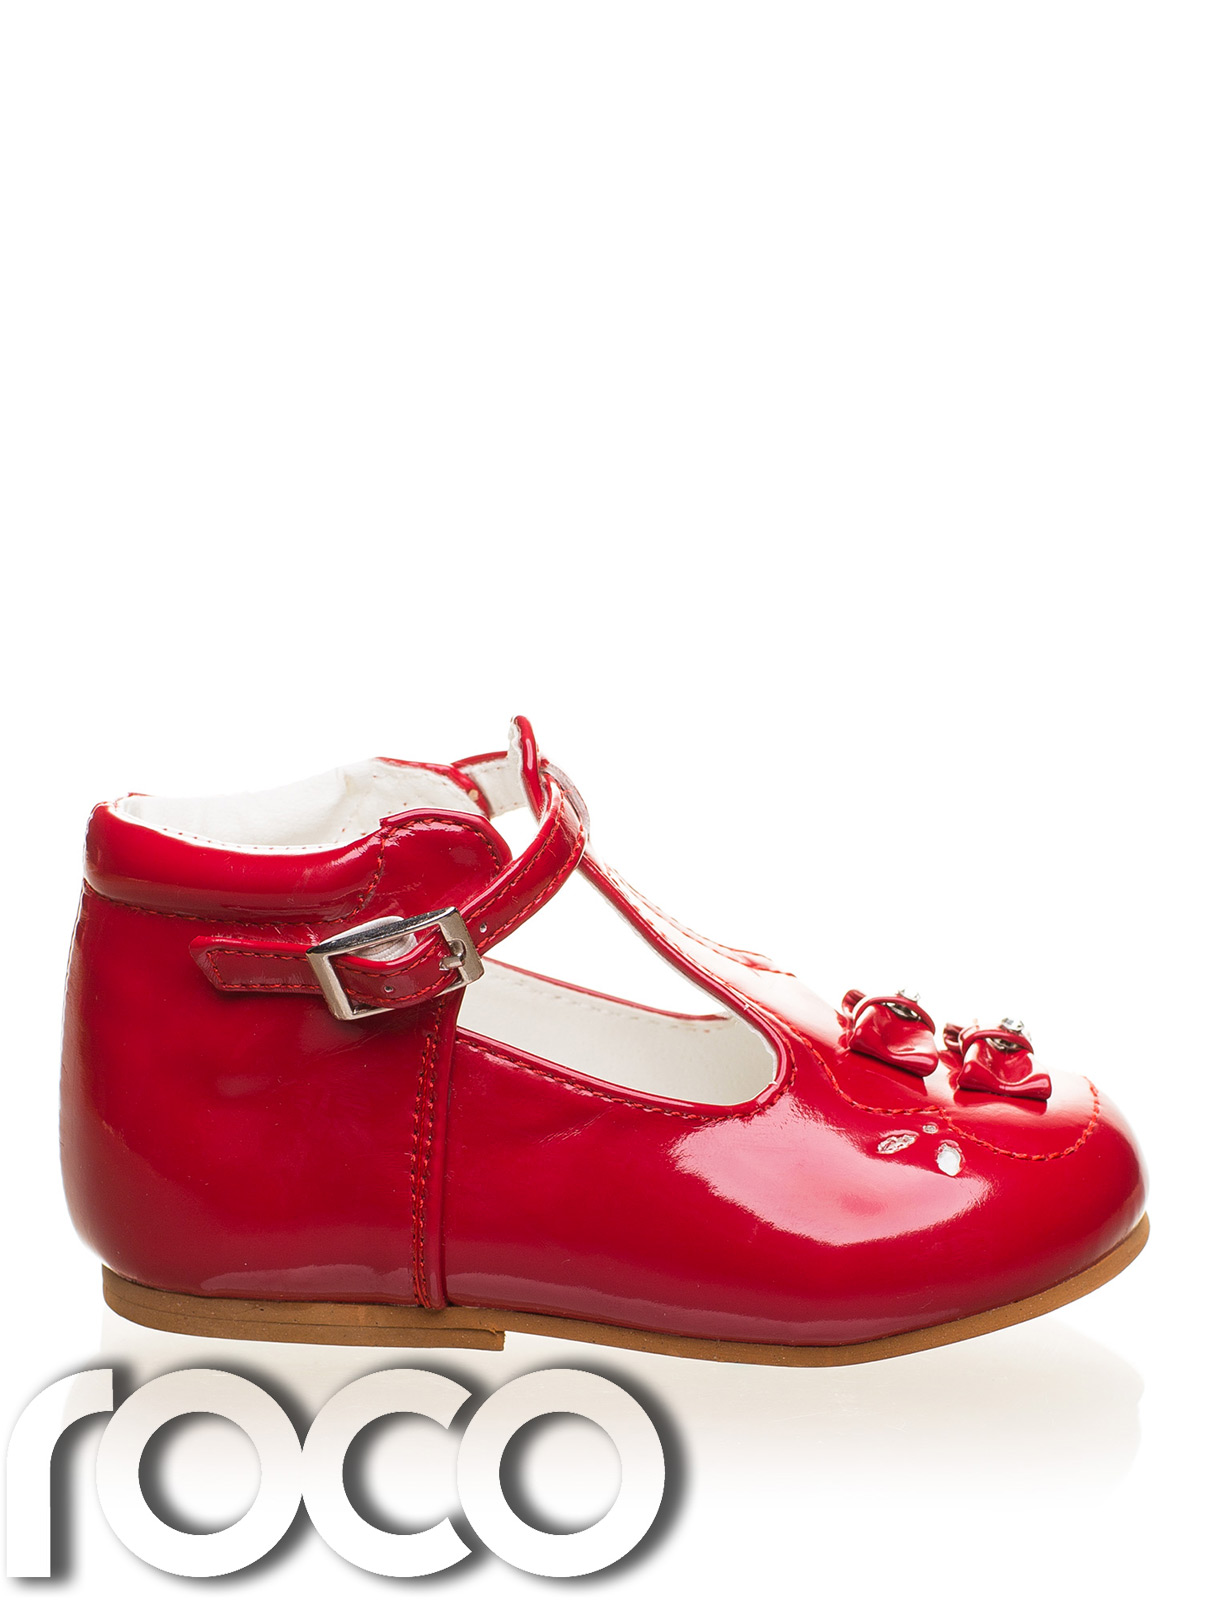 Girls Red Shoes Girls Party Shoes Bridesmaid Shoes Girls Wedding Shoes